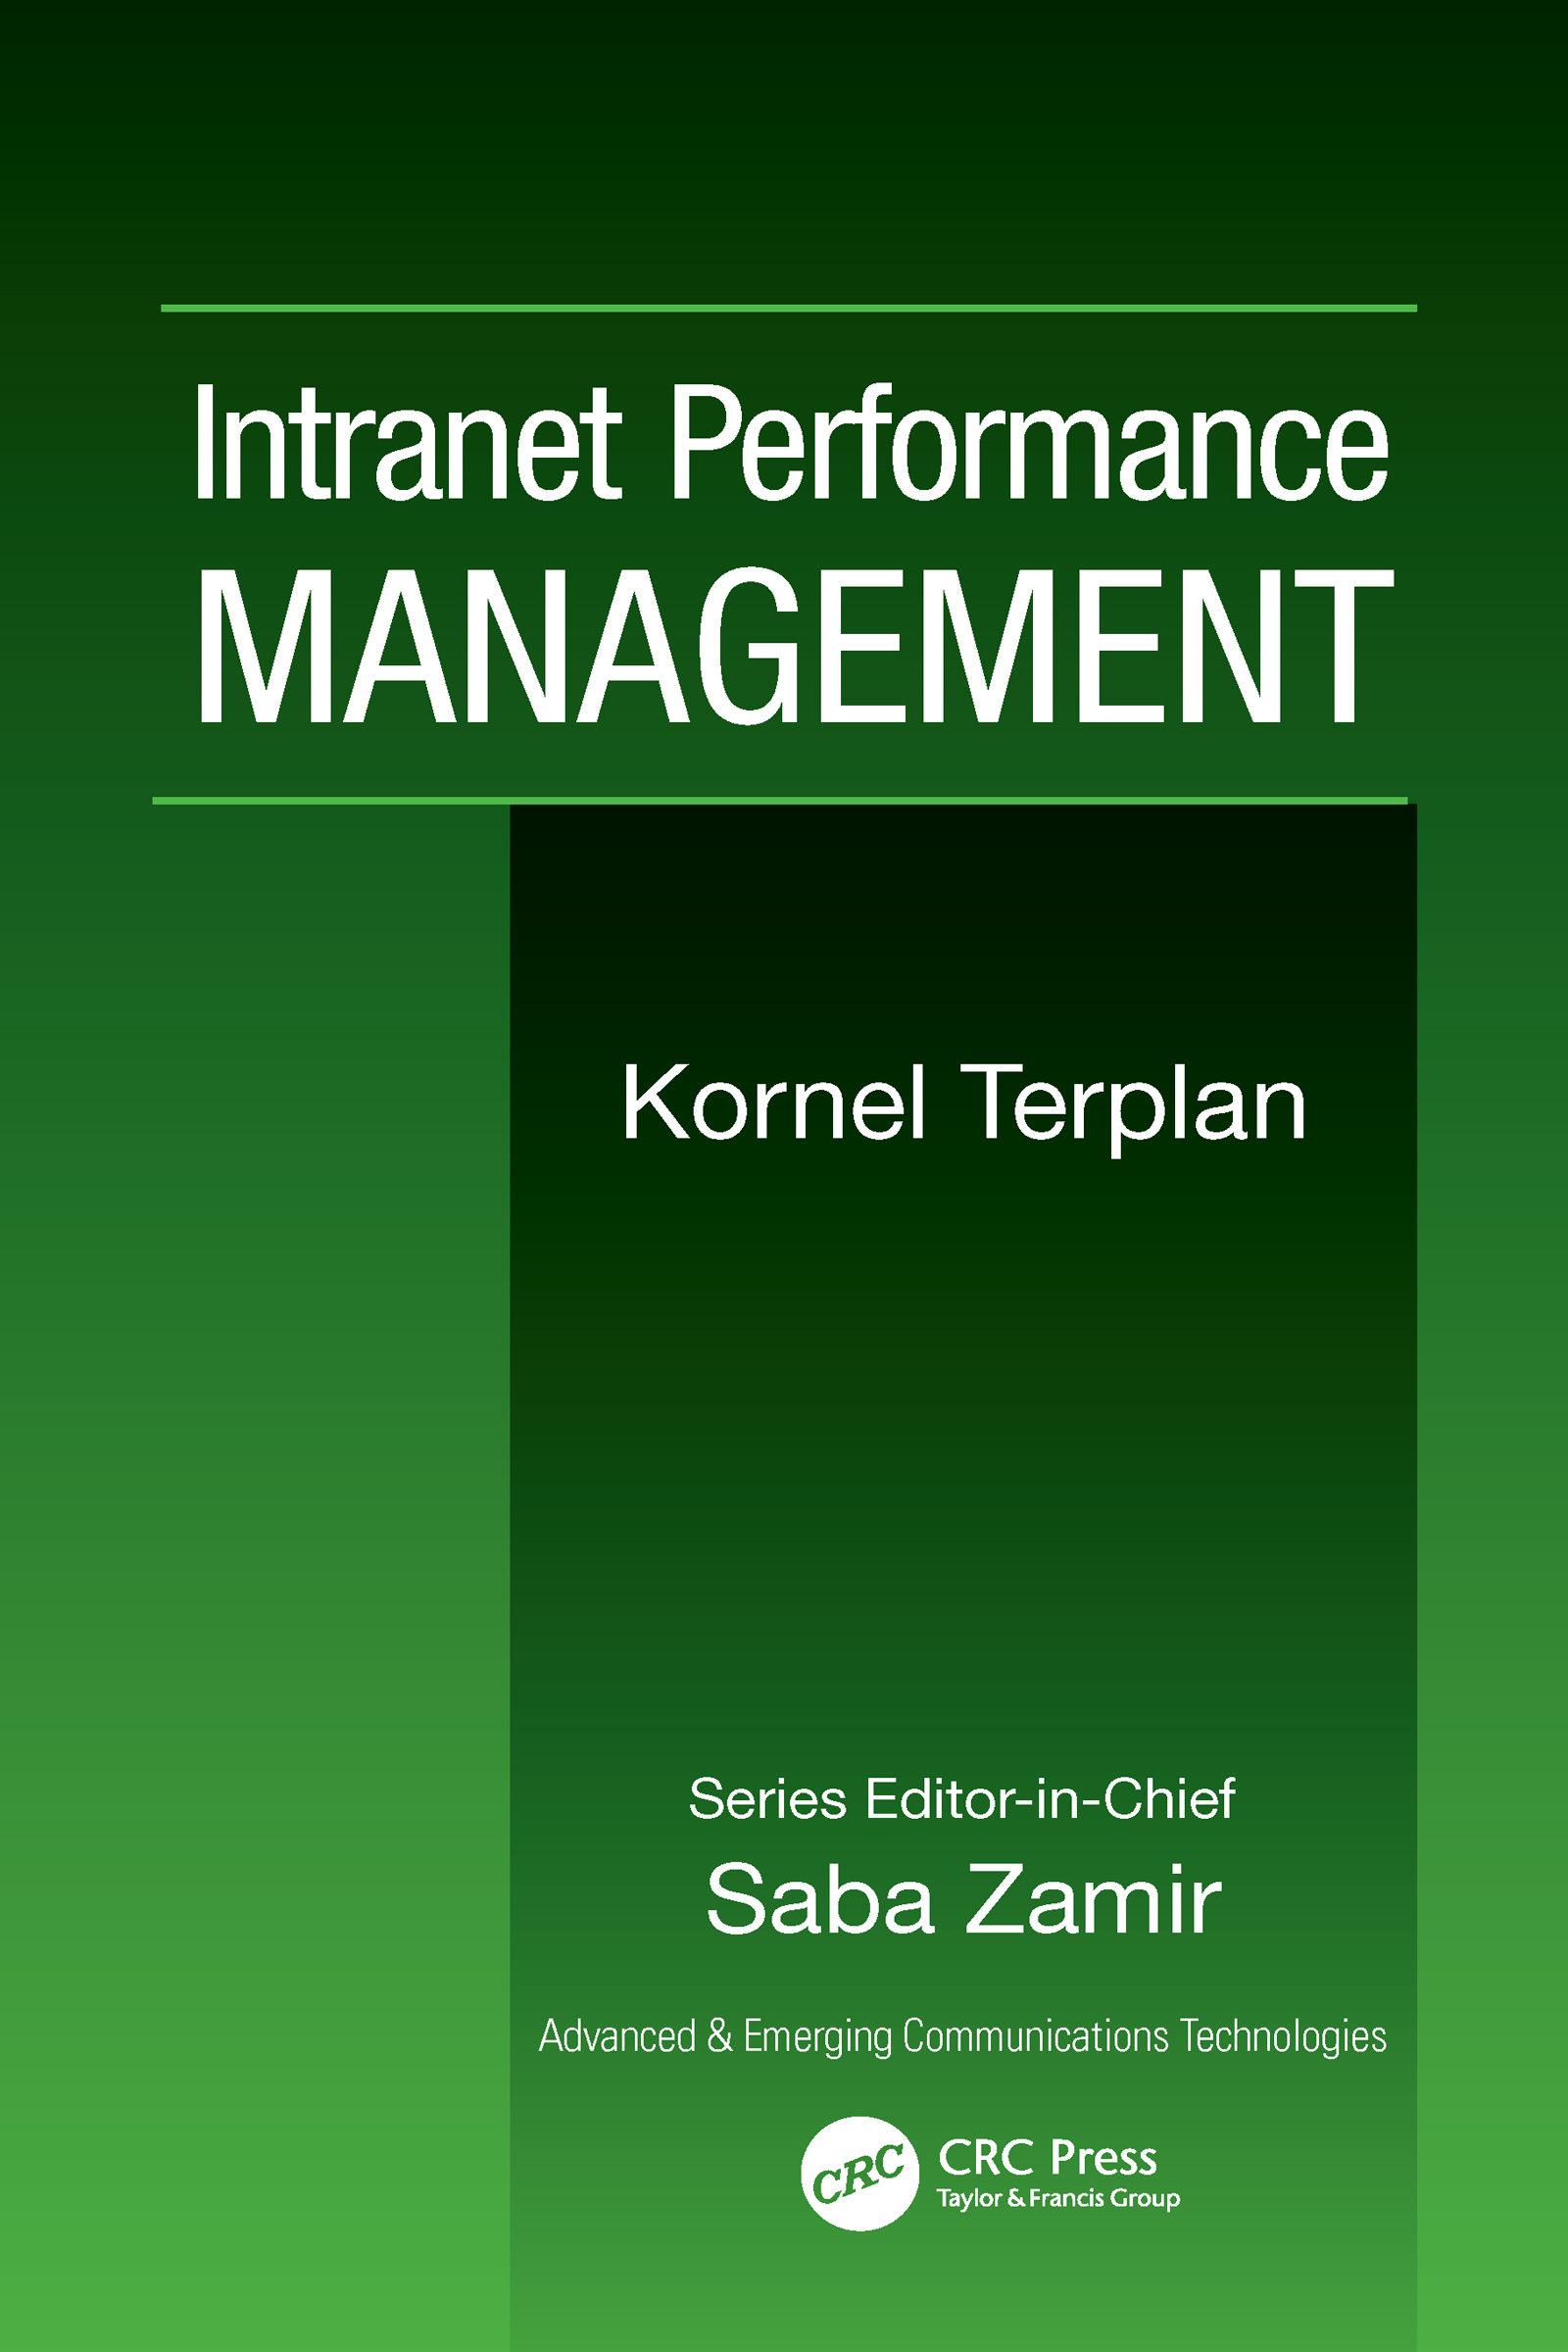 Intranet Performance Management book cover